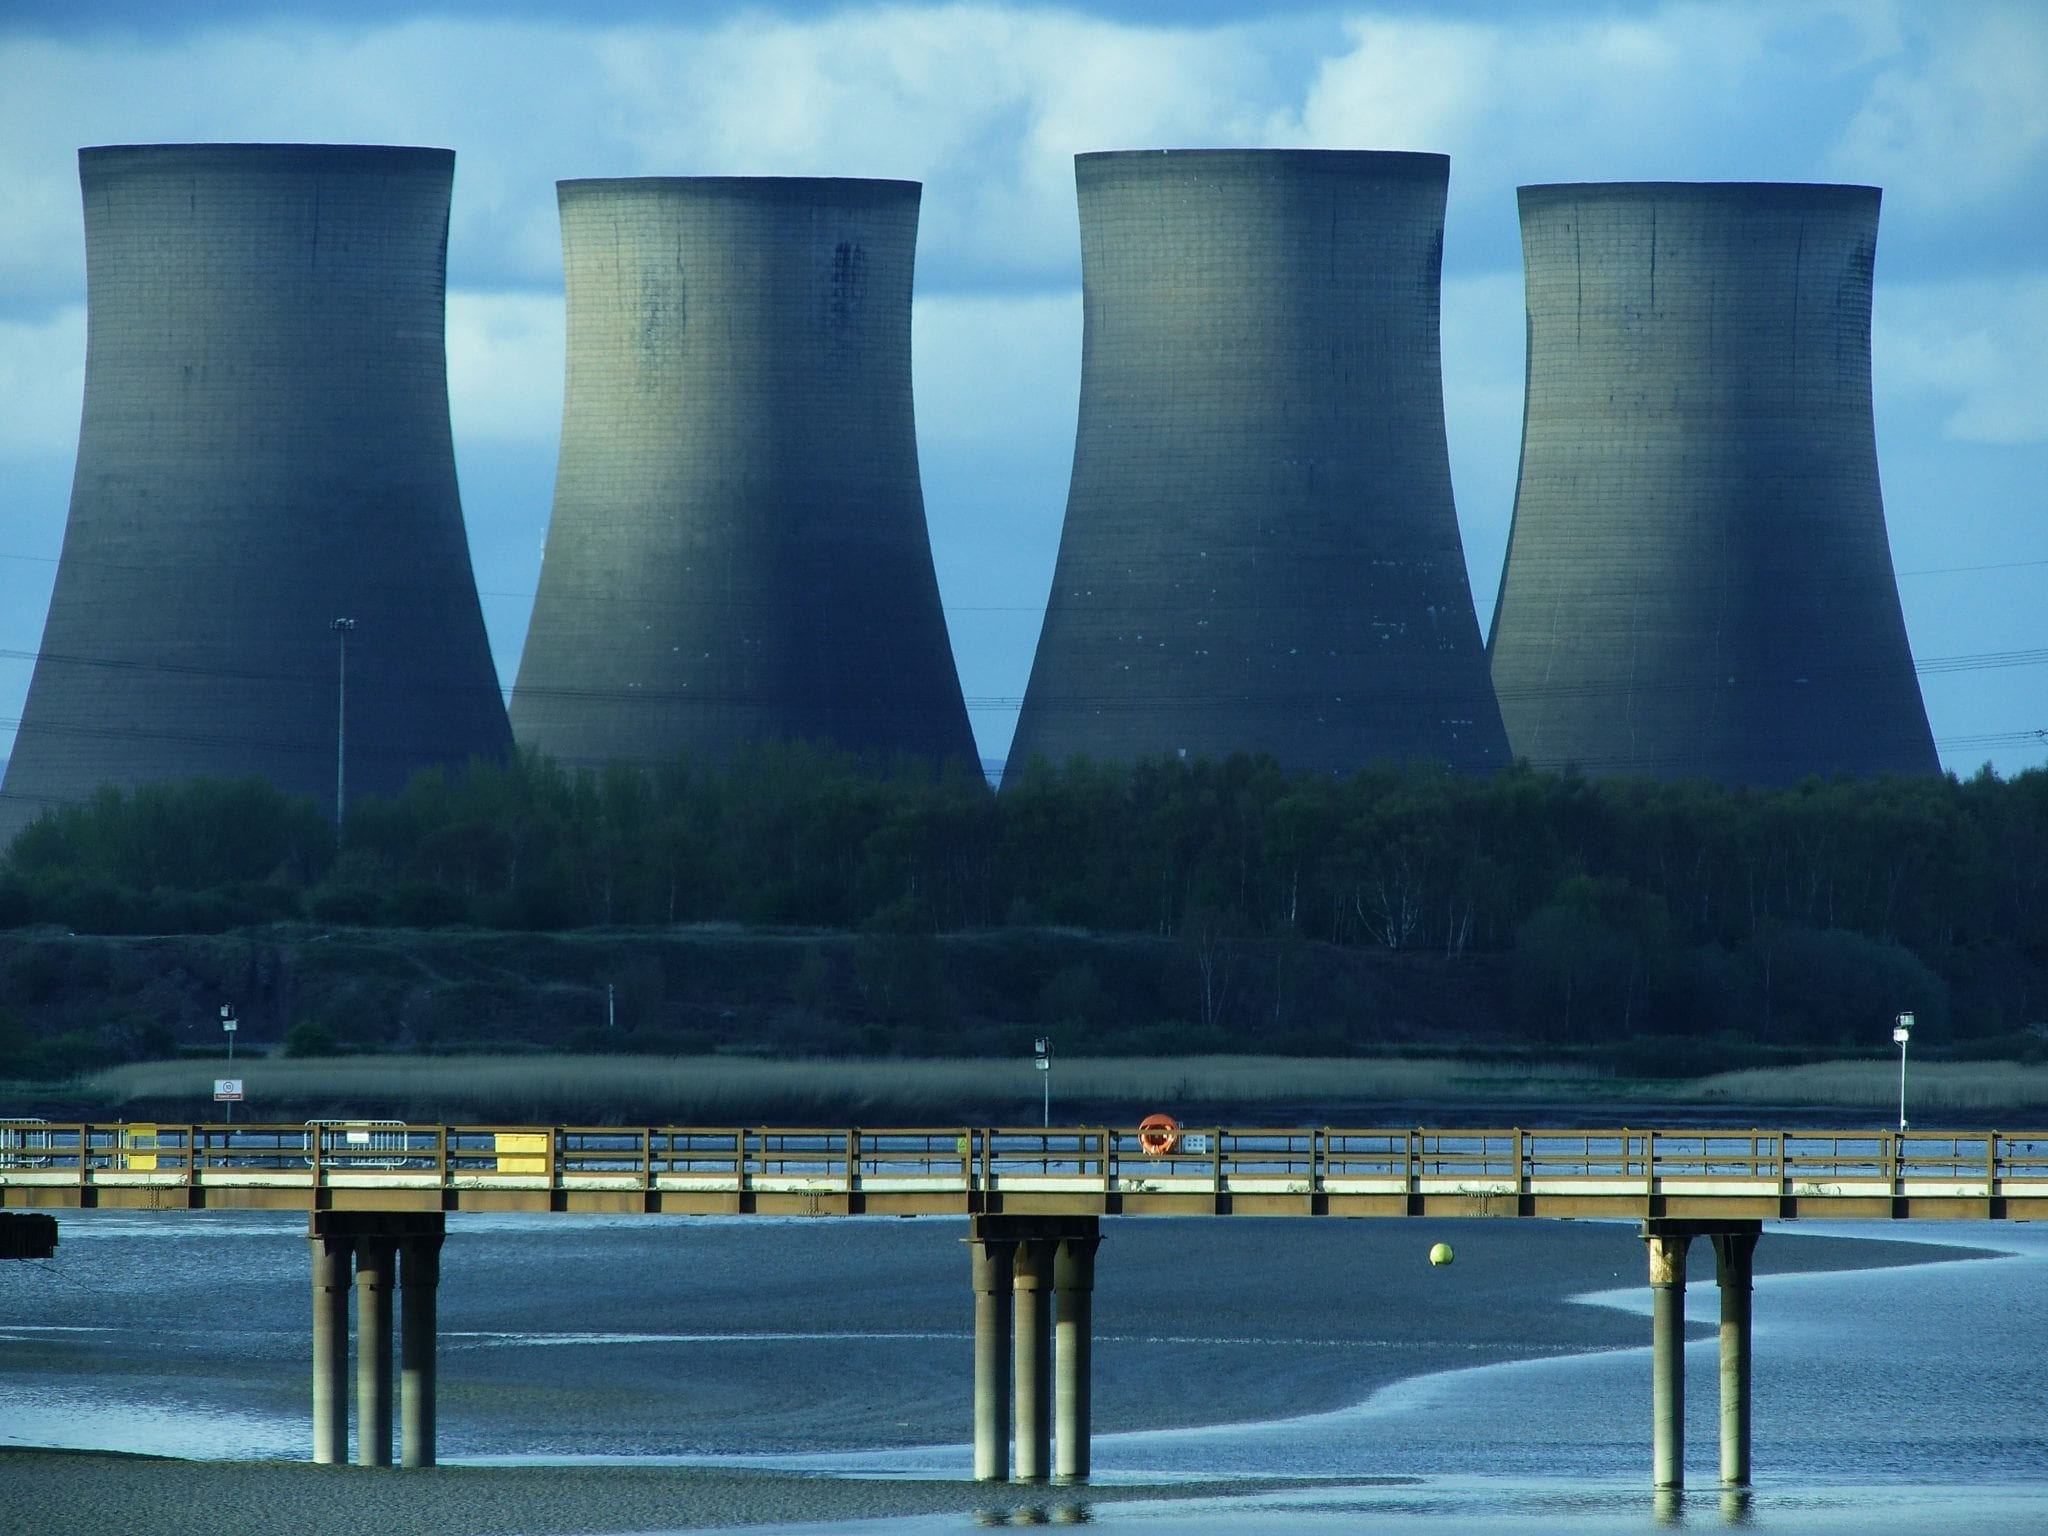 bridge-climate-change-cooling-tower-162646